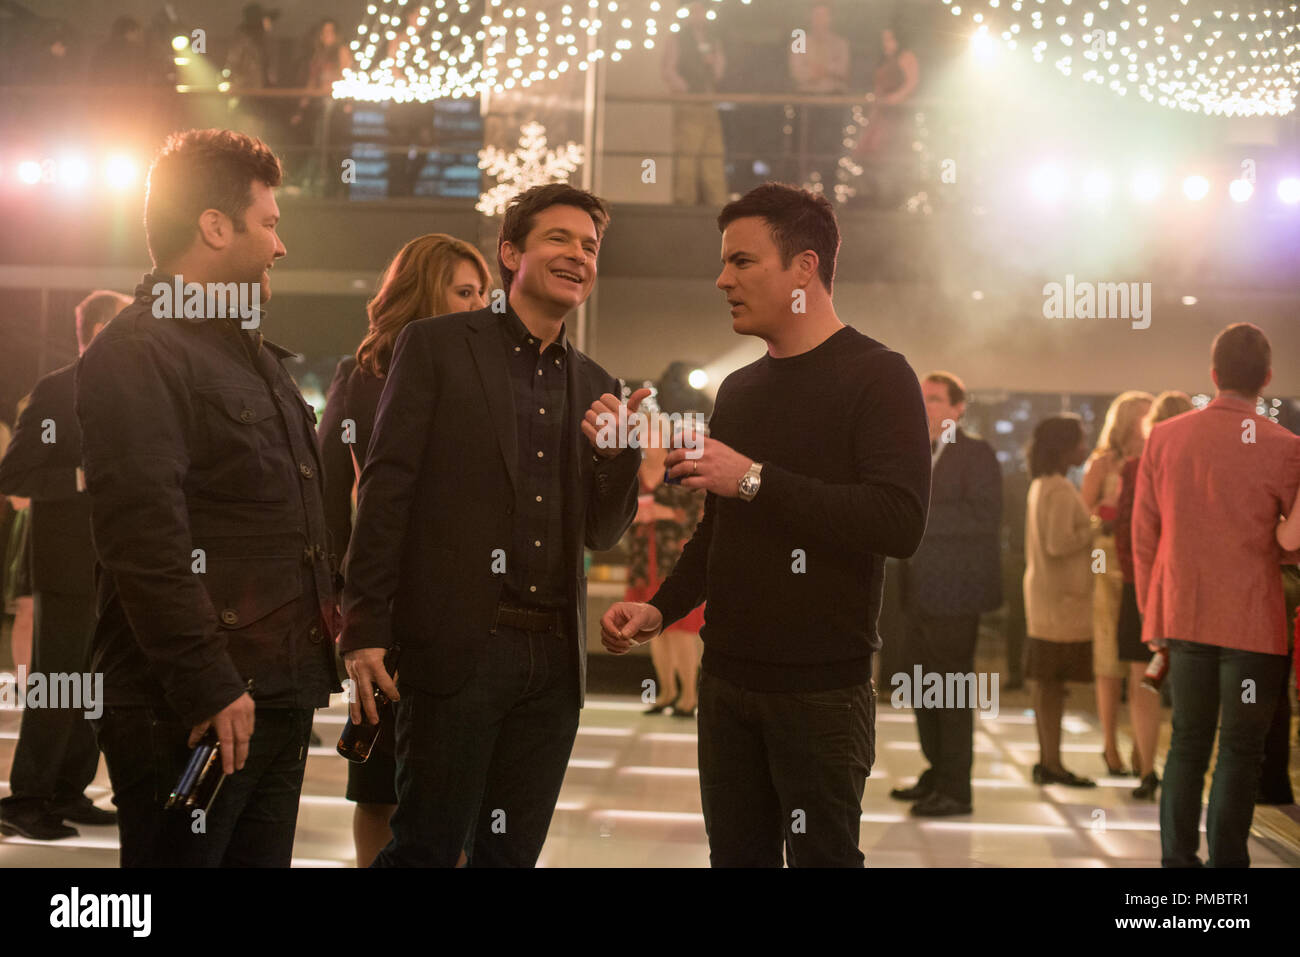 L-R) Director, Josh Gordon, Jason Bateman, and Director, Will Speck ...